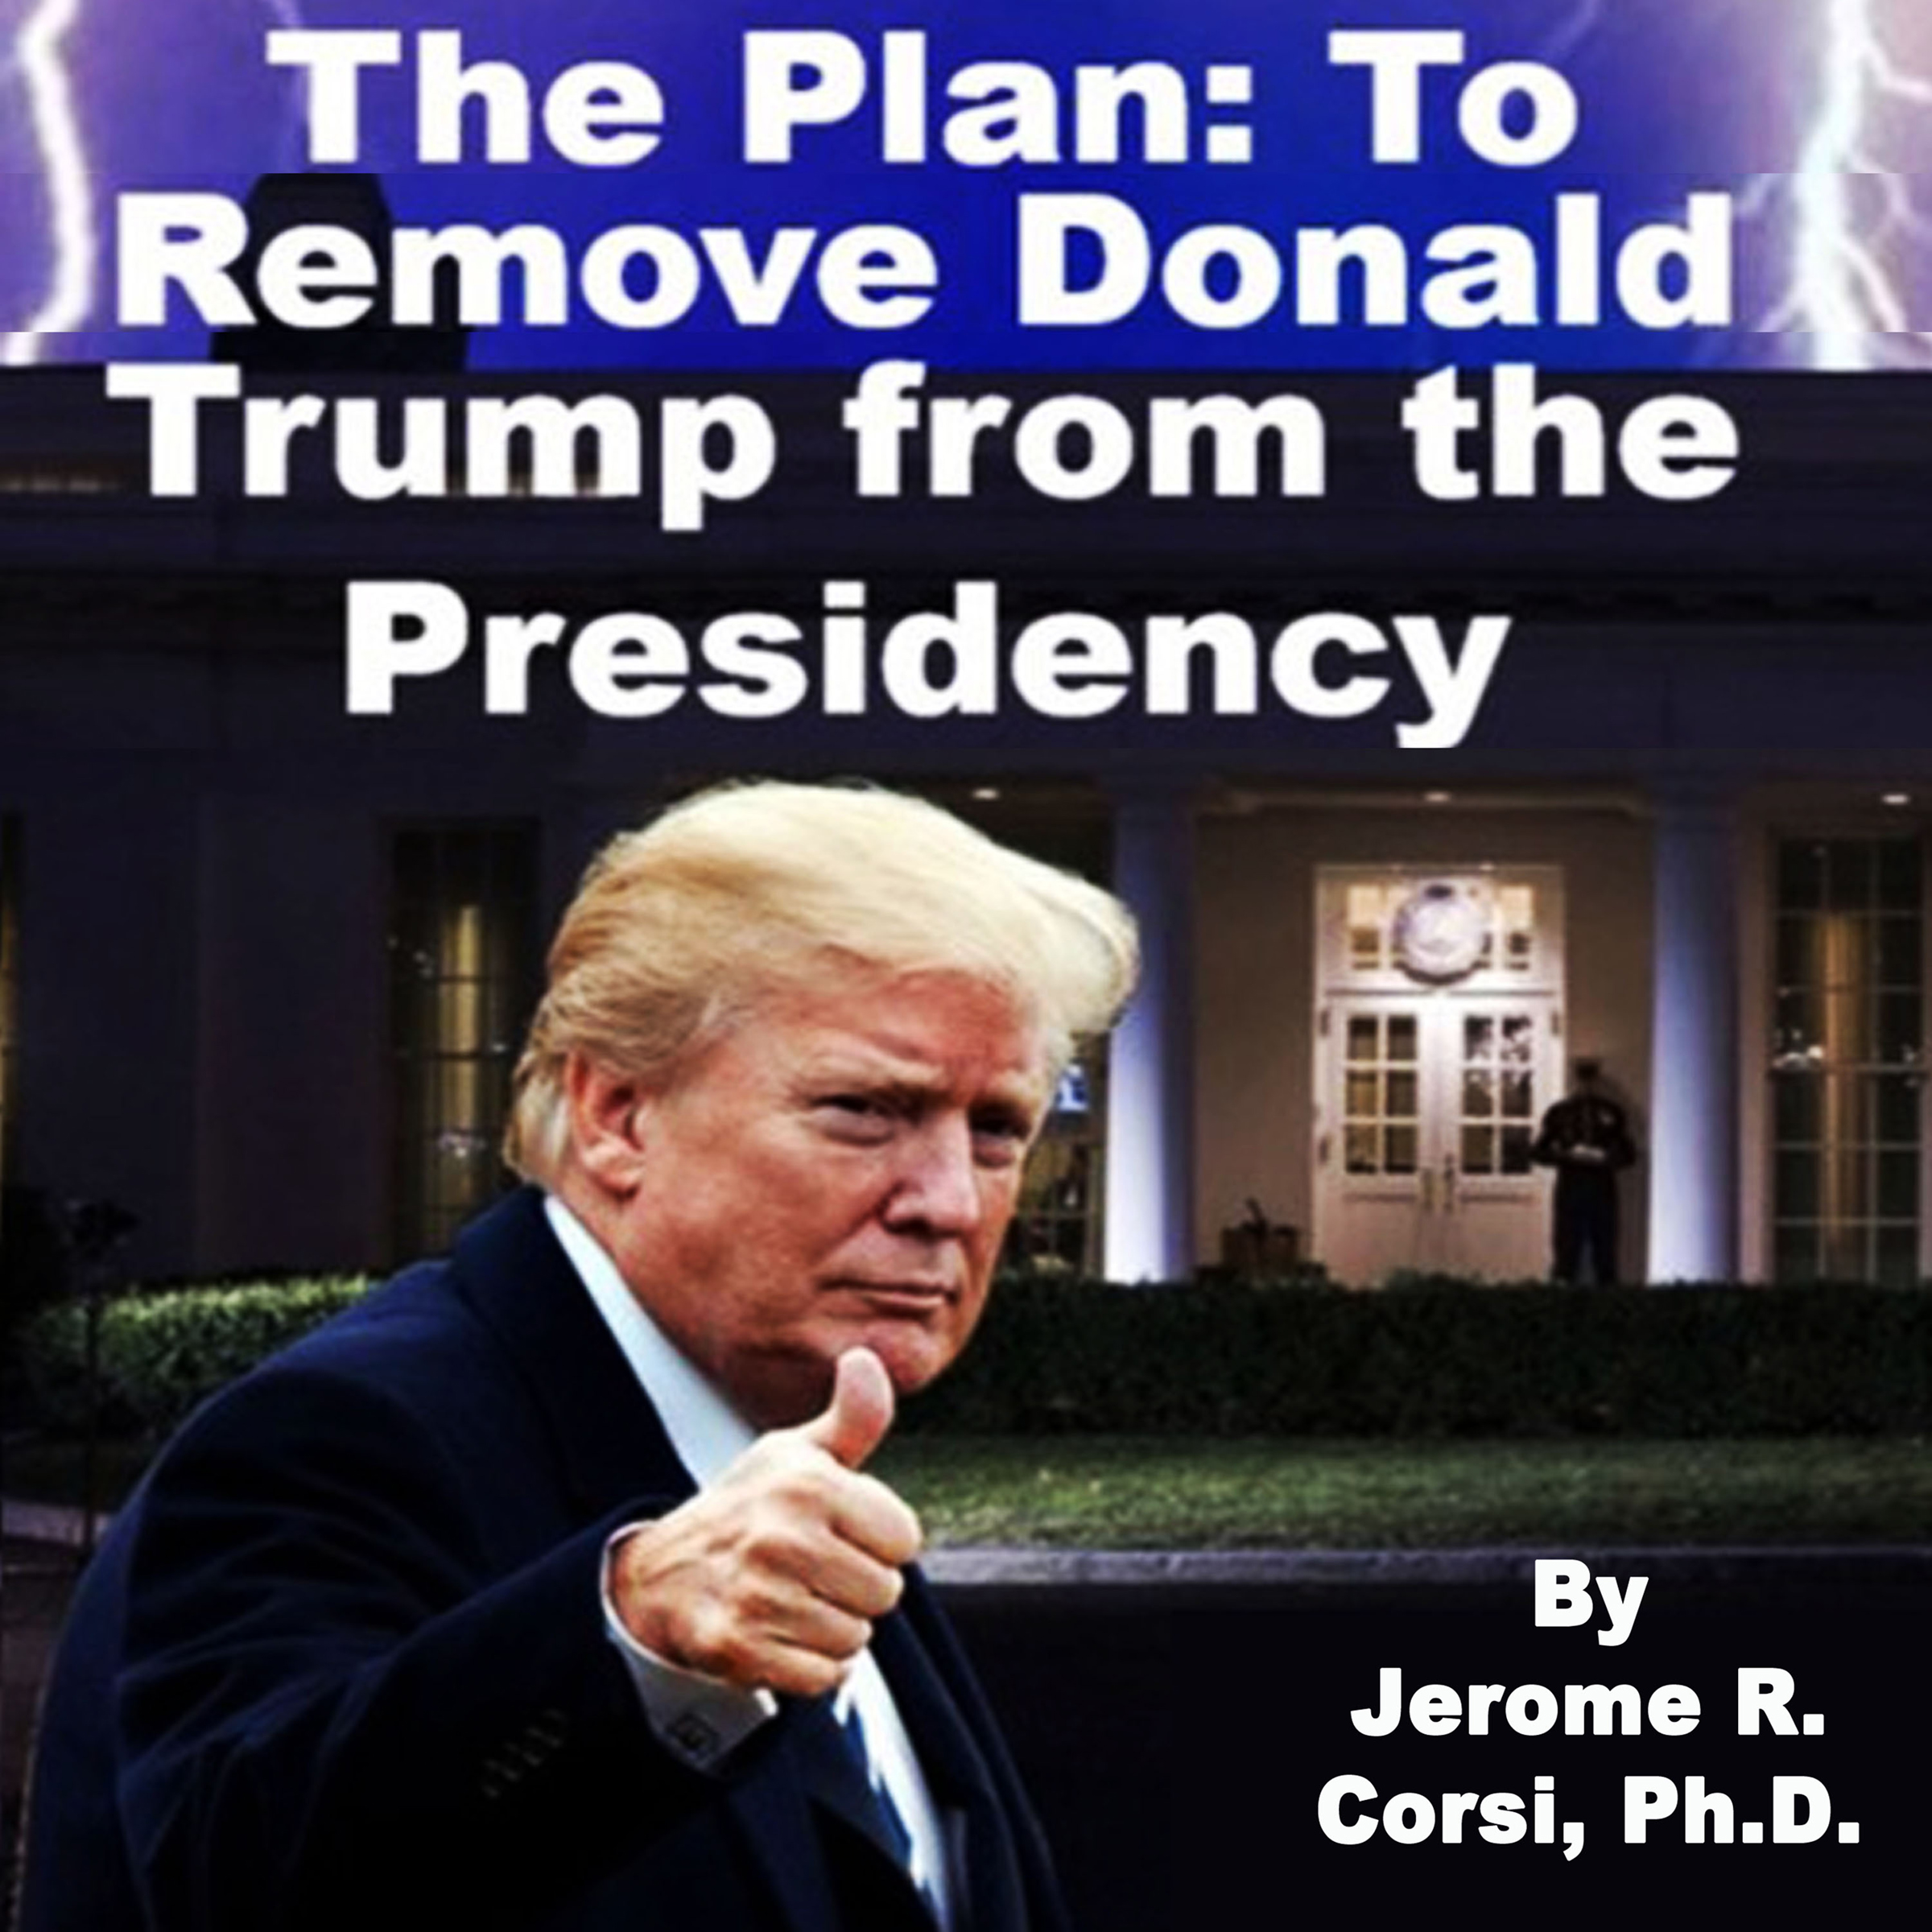 The Plan to Remove Donald Trump from the Presidency